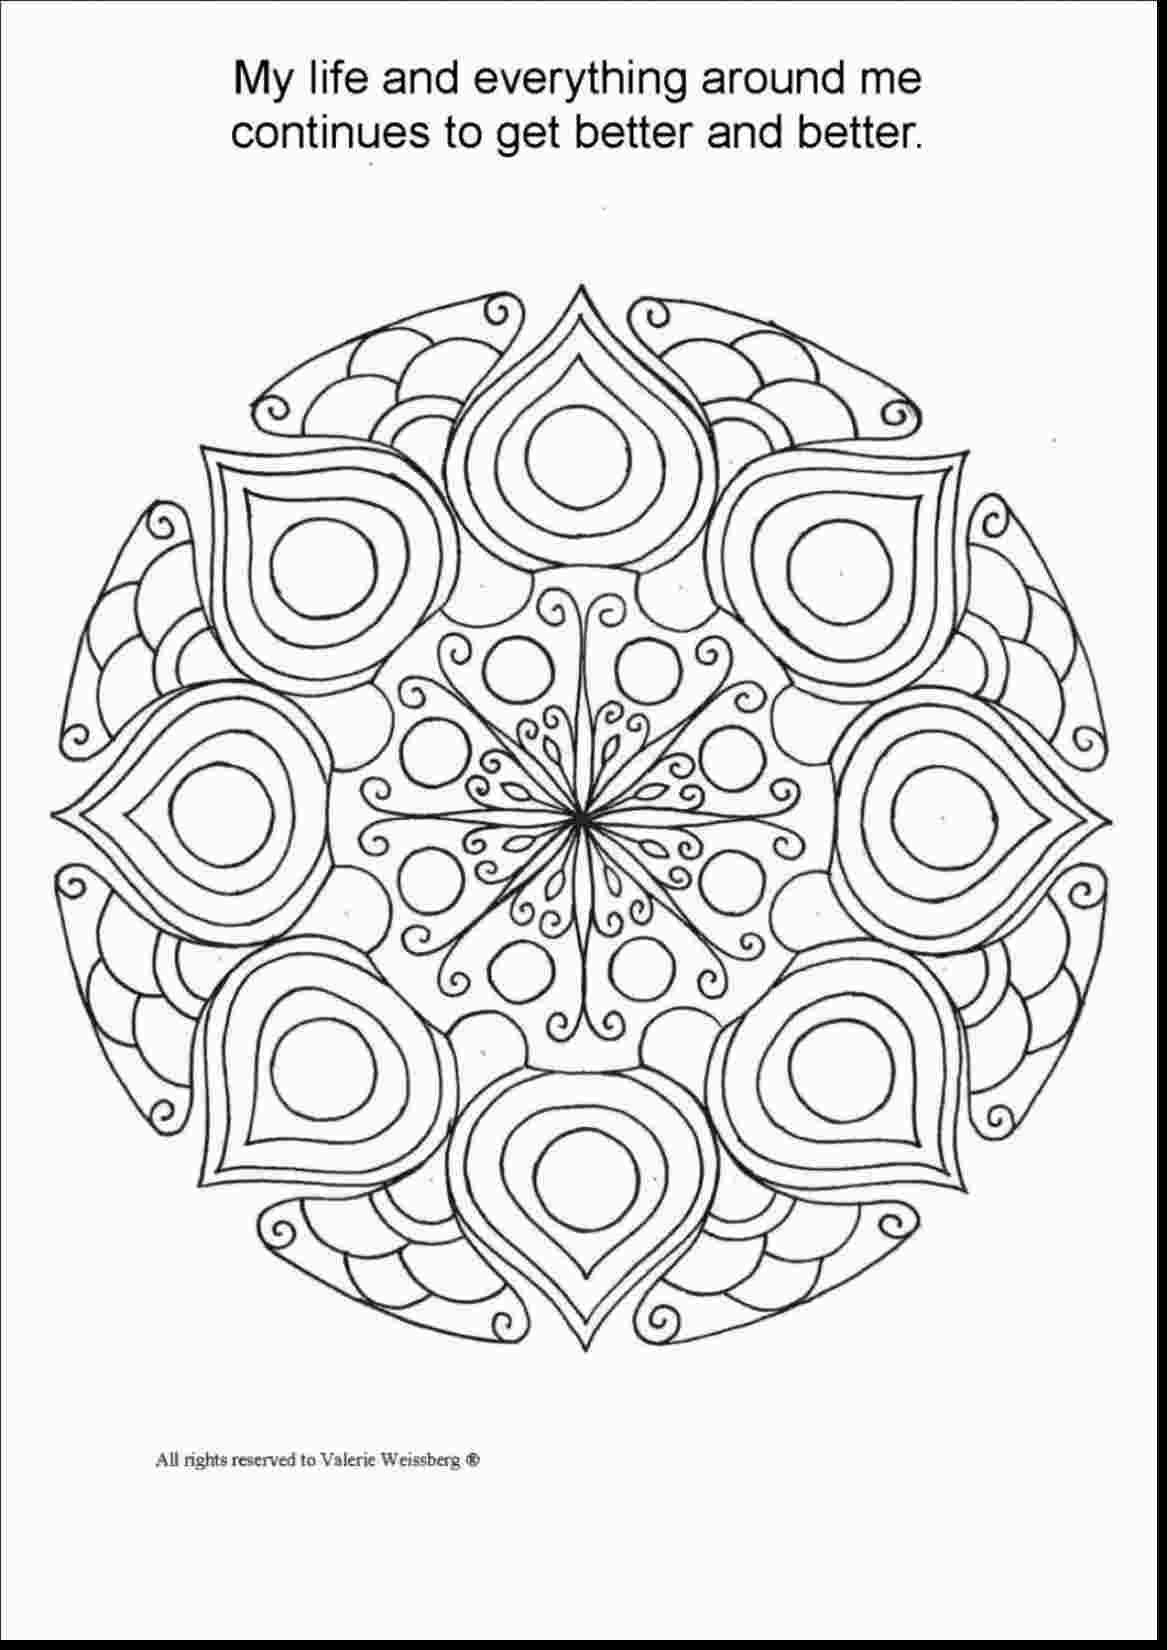 Therapy Coloring Book Pdf Coloring Book Art Mandala Coloring Pages Mandala Coloring